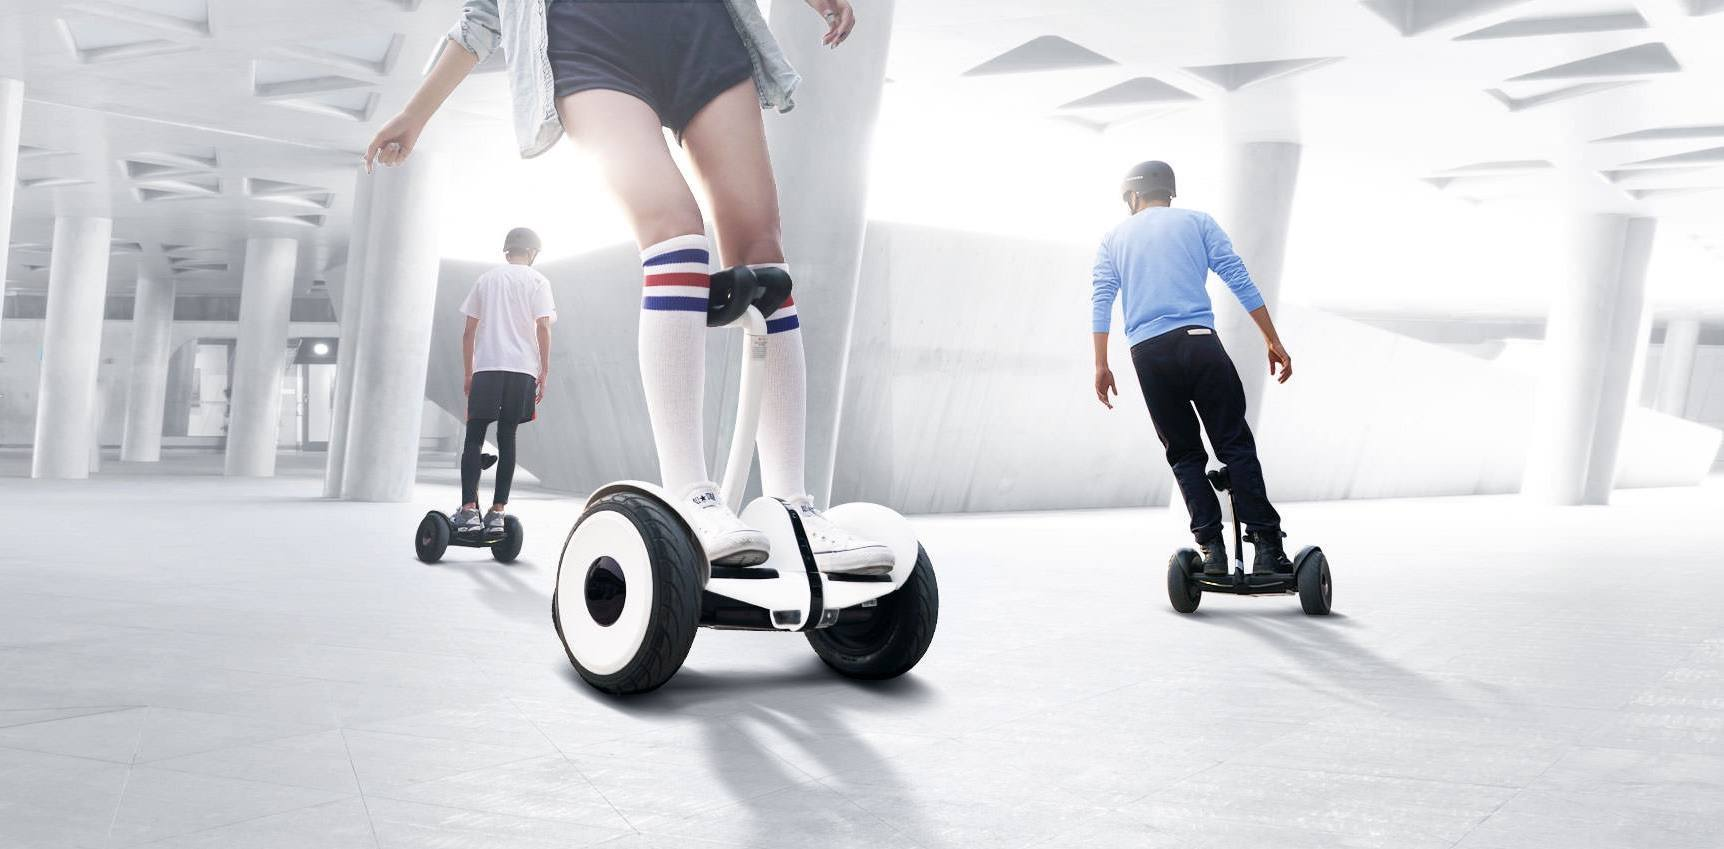 Xiaomi just made a hoverboard